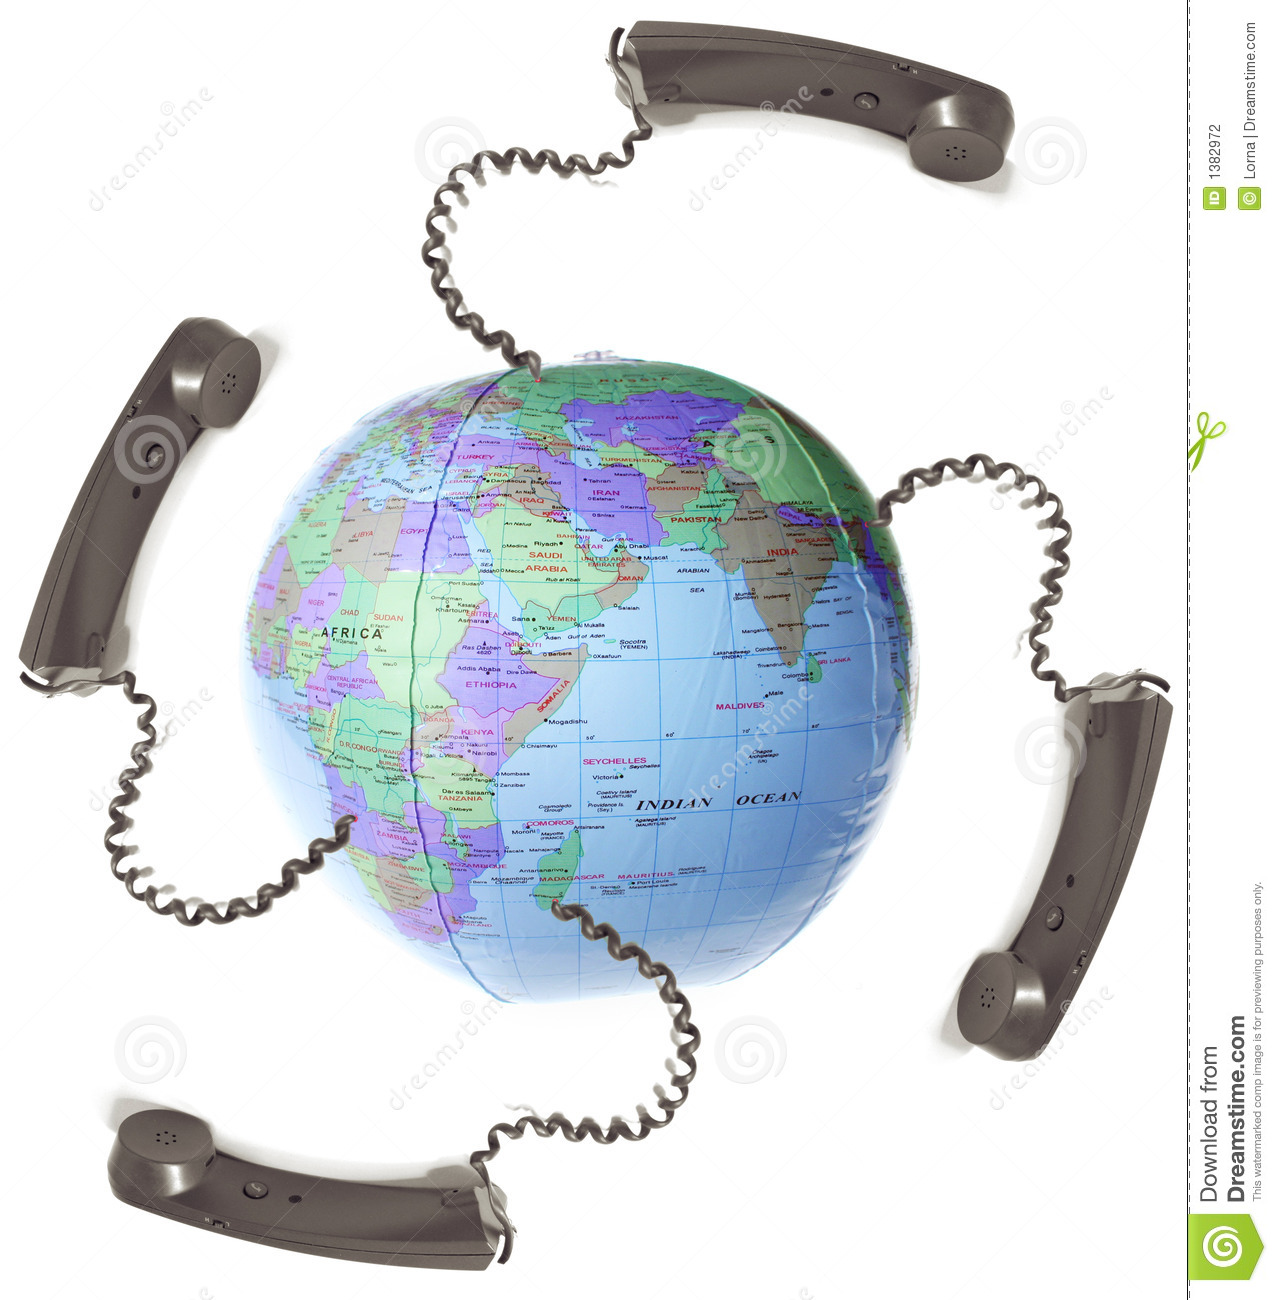 globalisation and media Globalization of media: key issues and dimensions 67 communications and information technologies have provided methods for large corporations to.